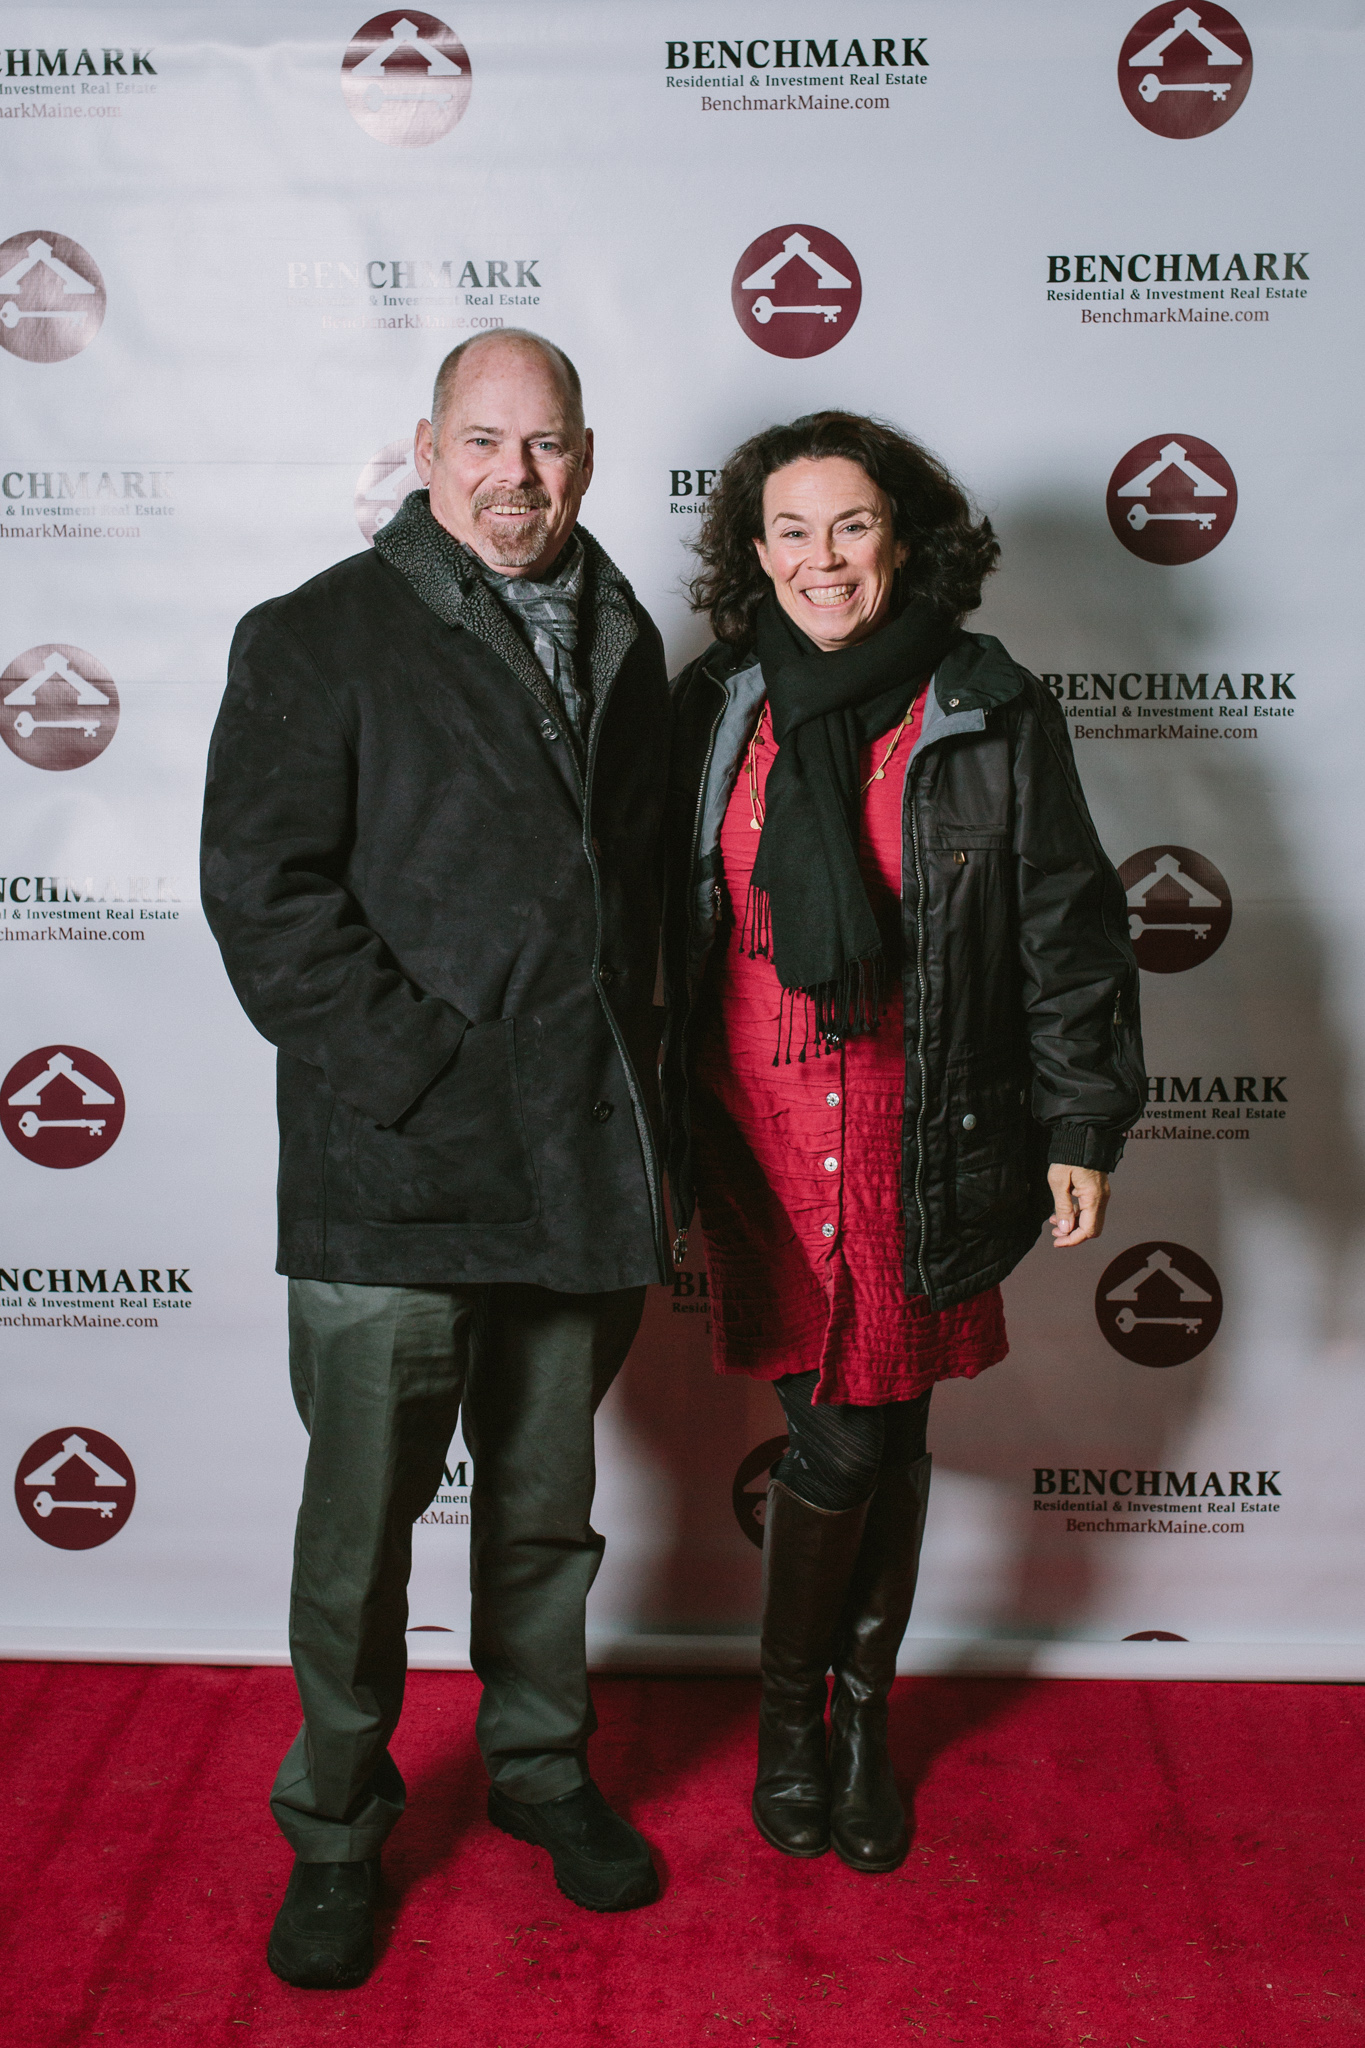 Benchmark_Holiday_Party_SR-009.jpg